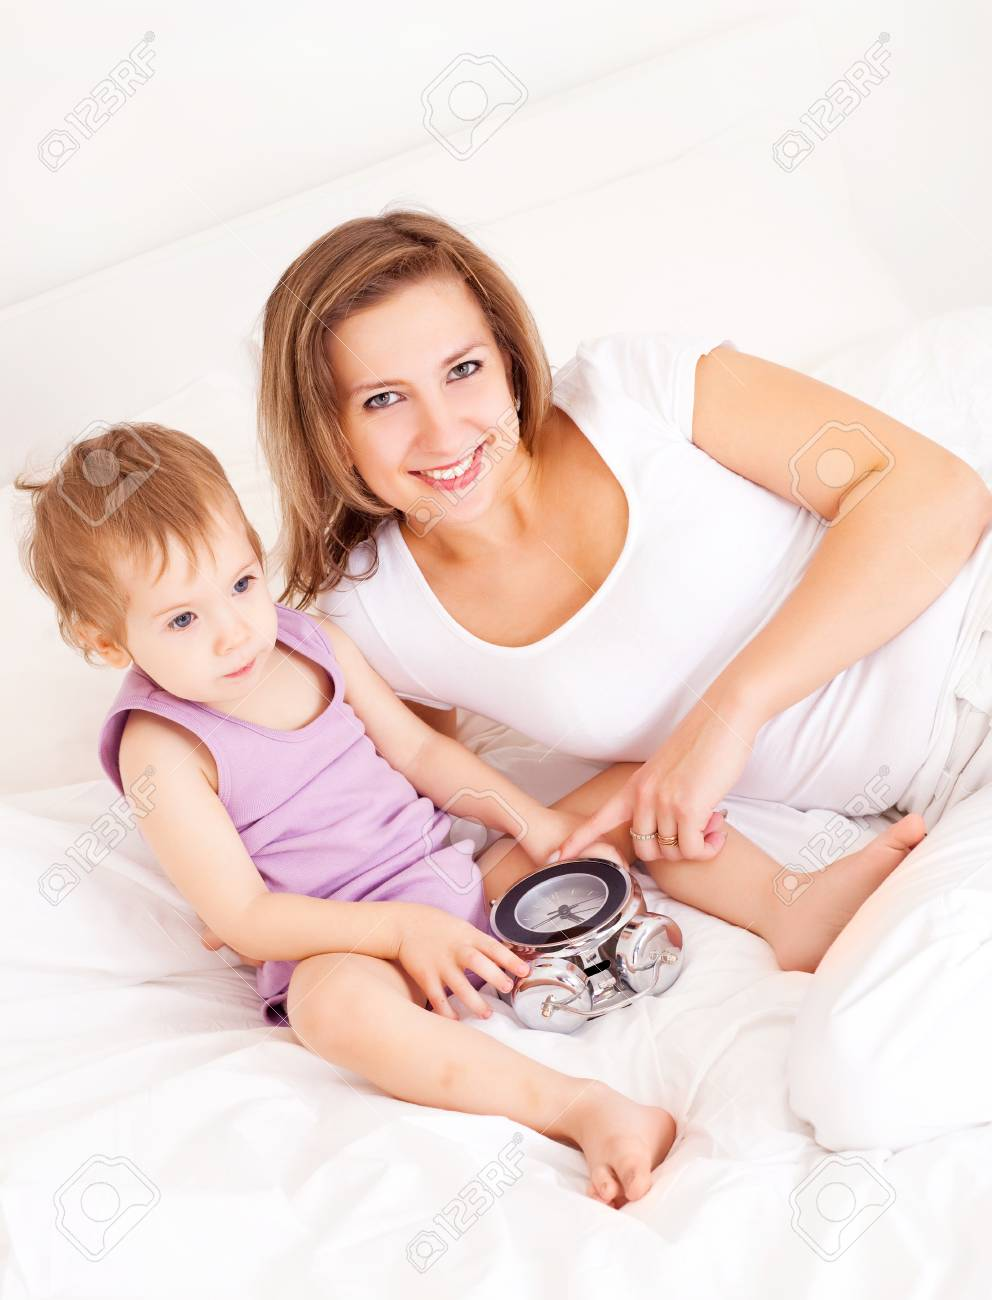 young beautiful mother and her baby on the bed at home Stock Photo - 8402438